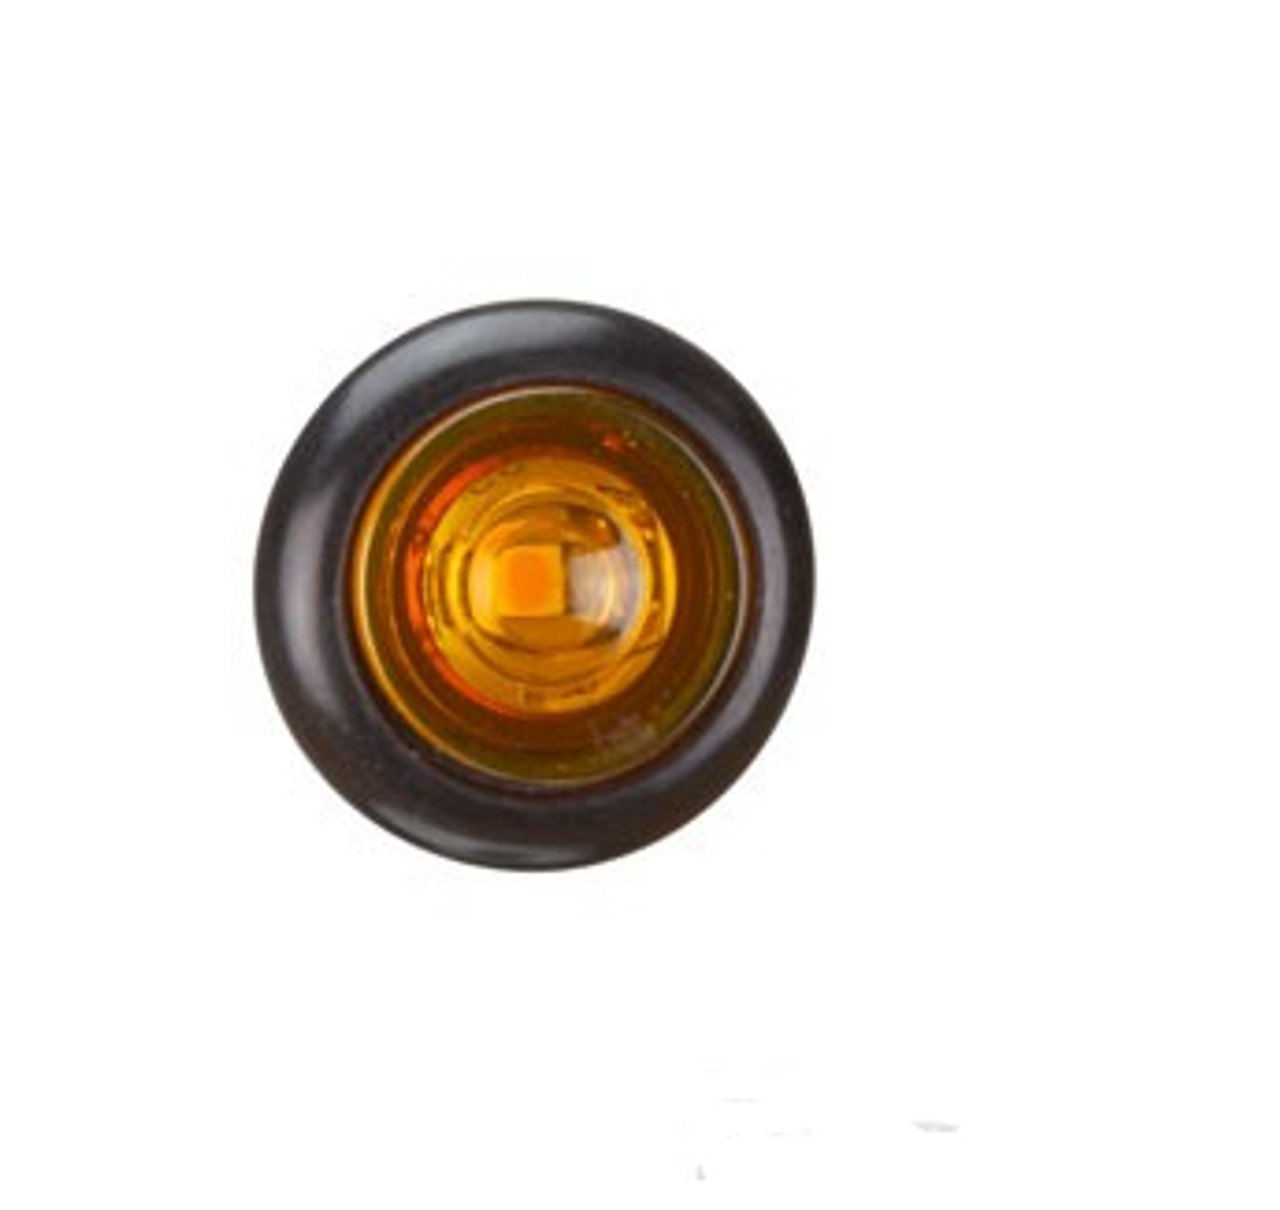 BR11A - Clearance Light LED Amber. BR11 Series. 10-30V. Flush Rubber Mount. Small Round Light. RoadVision. Ultimate LED.